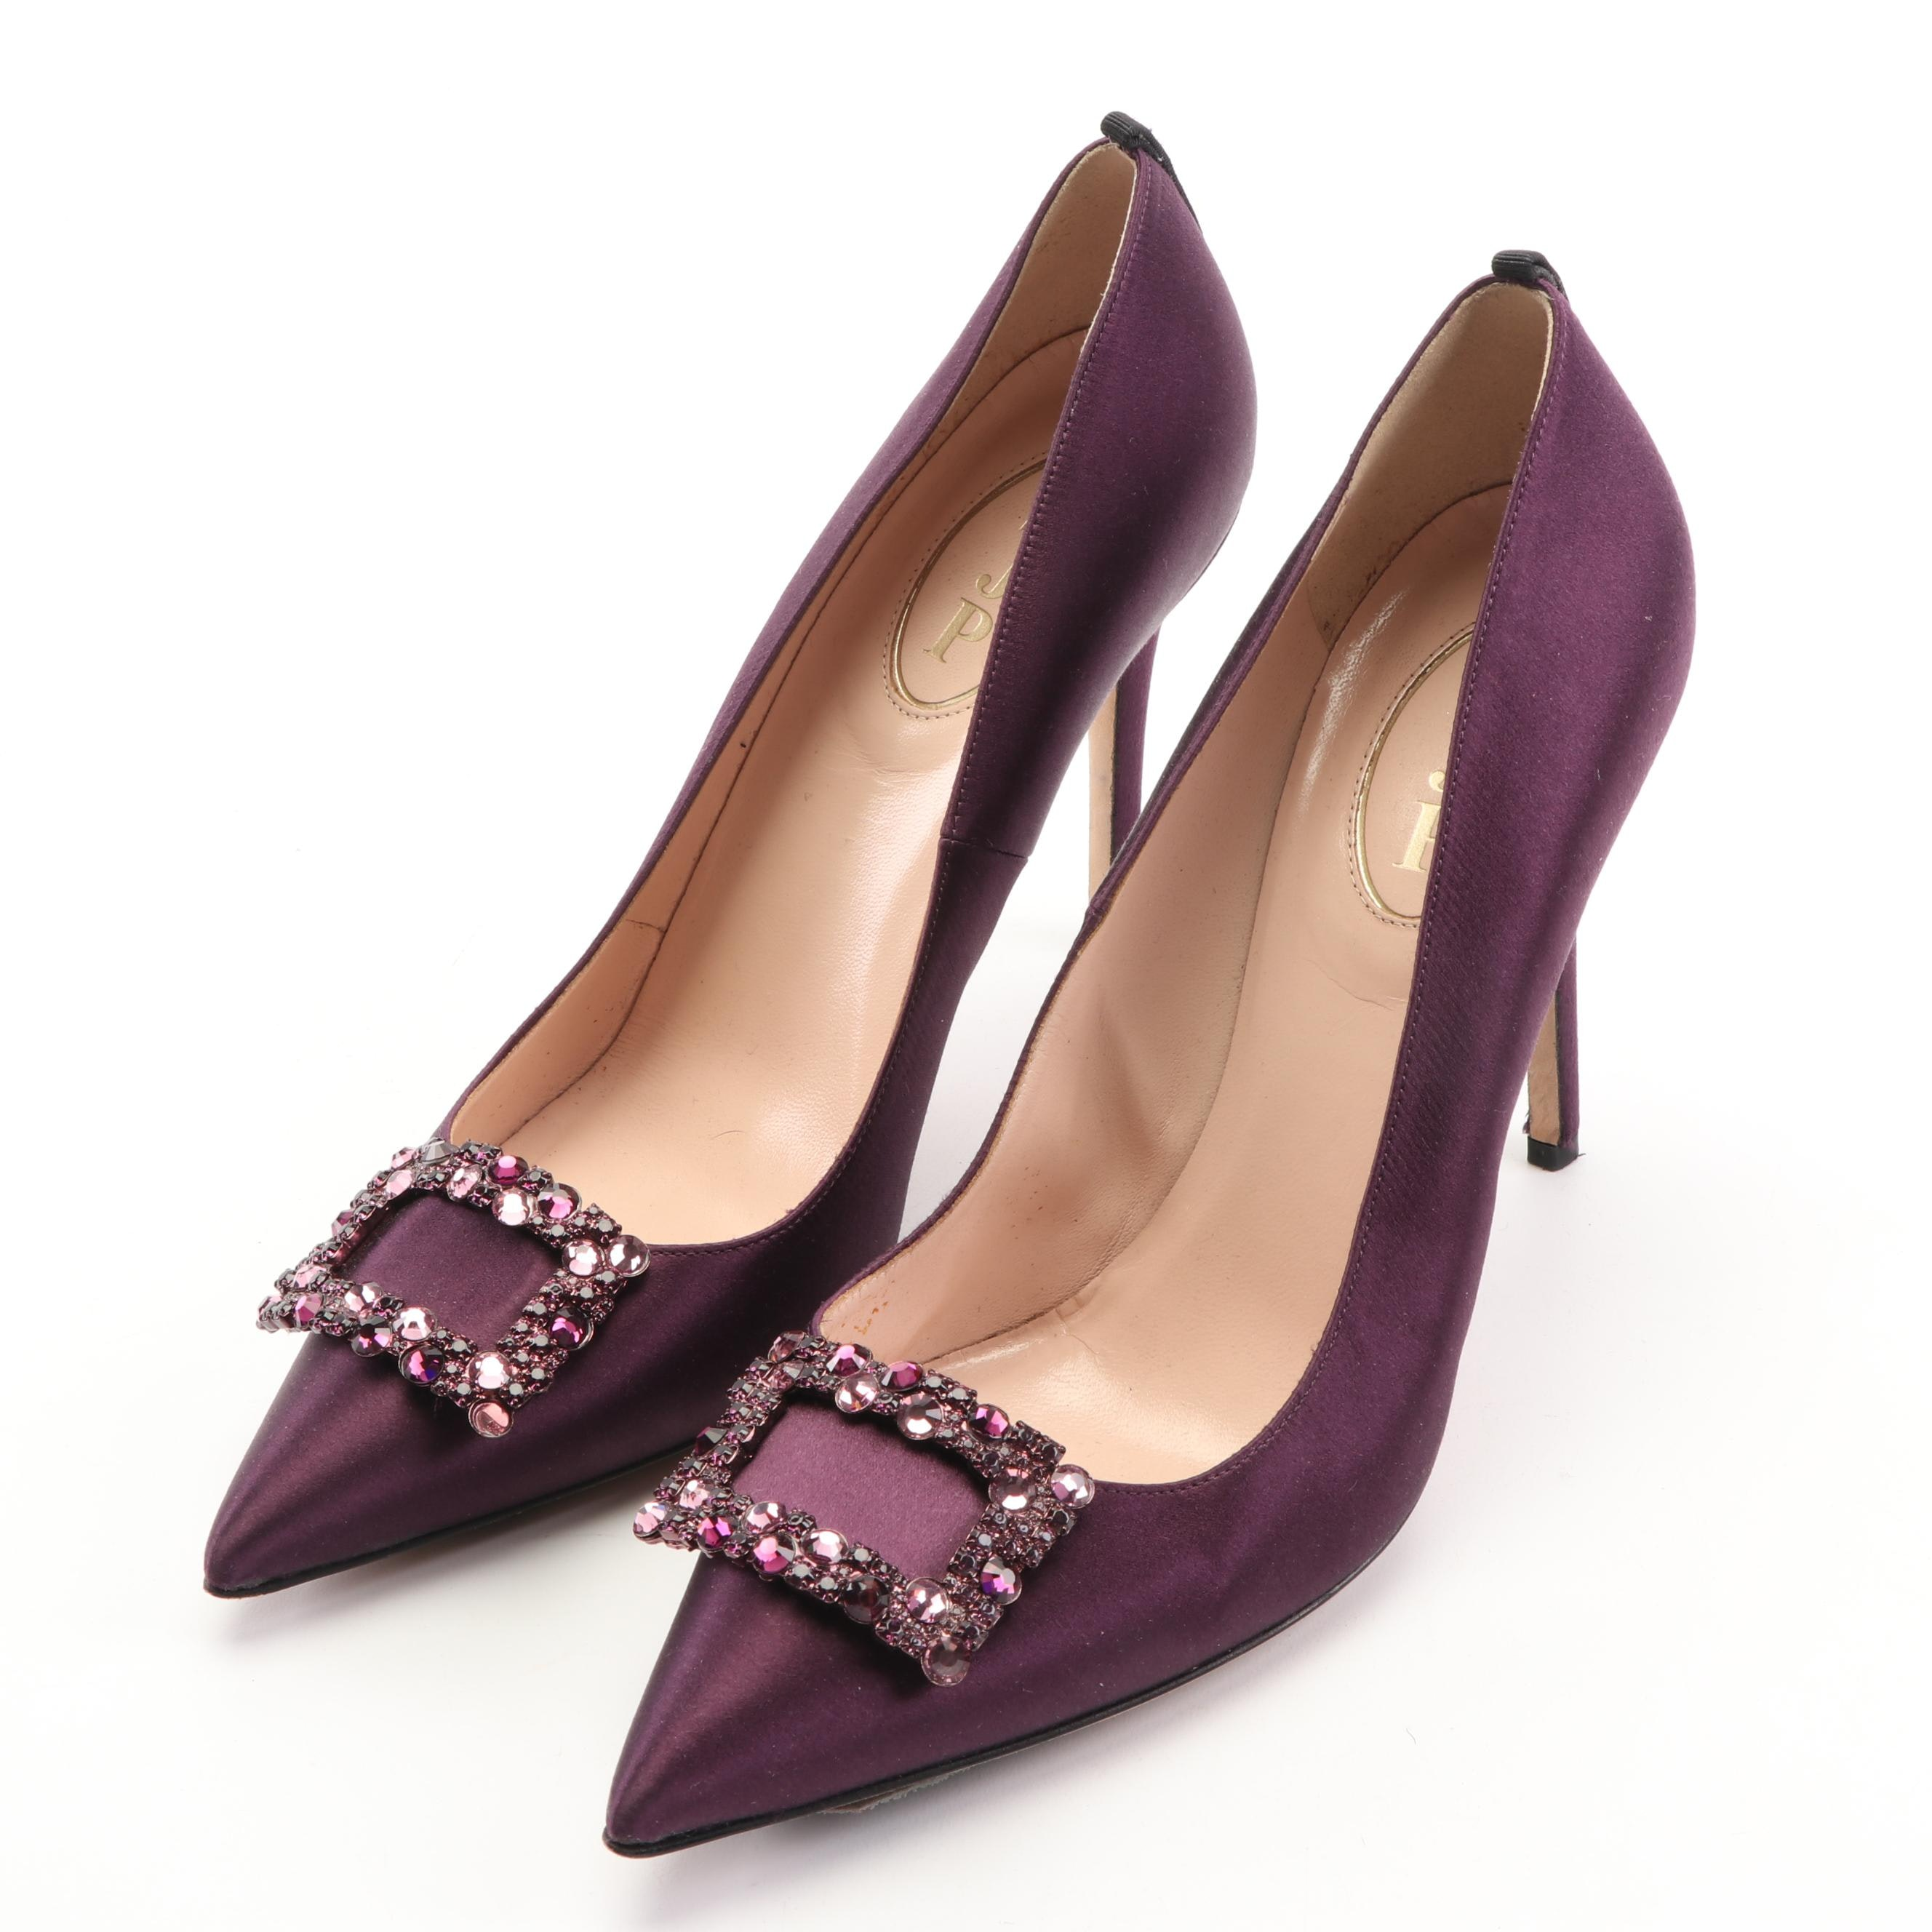 SJP by Sarah Jessica Parker Aubergine Satin Pumps with Embellished Buckles